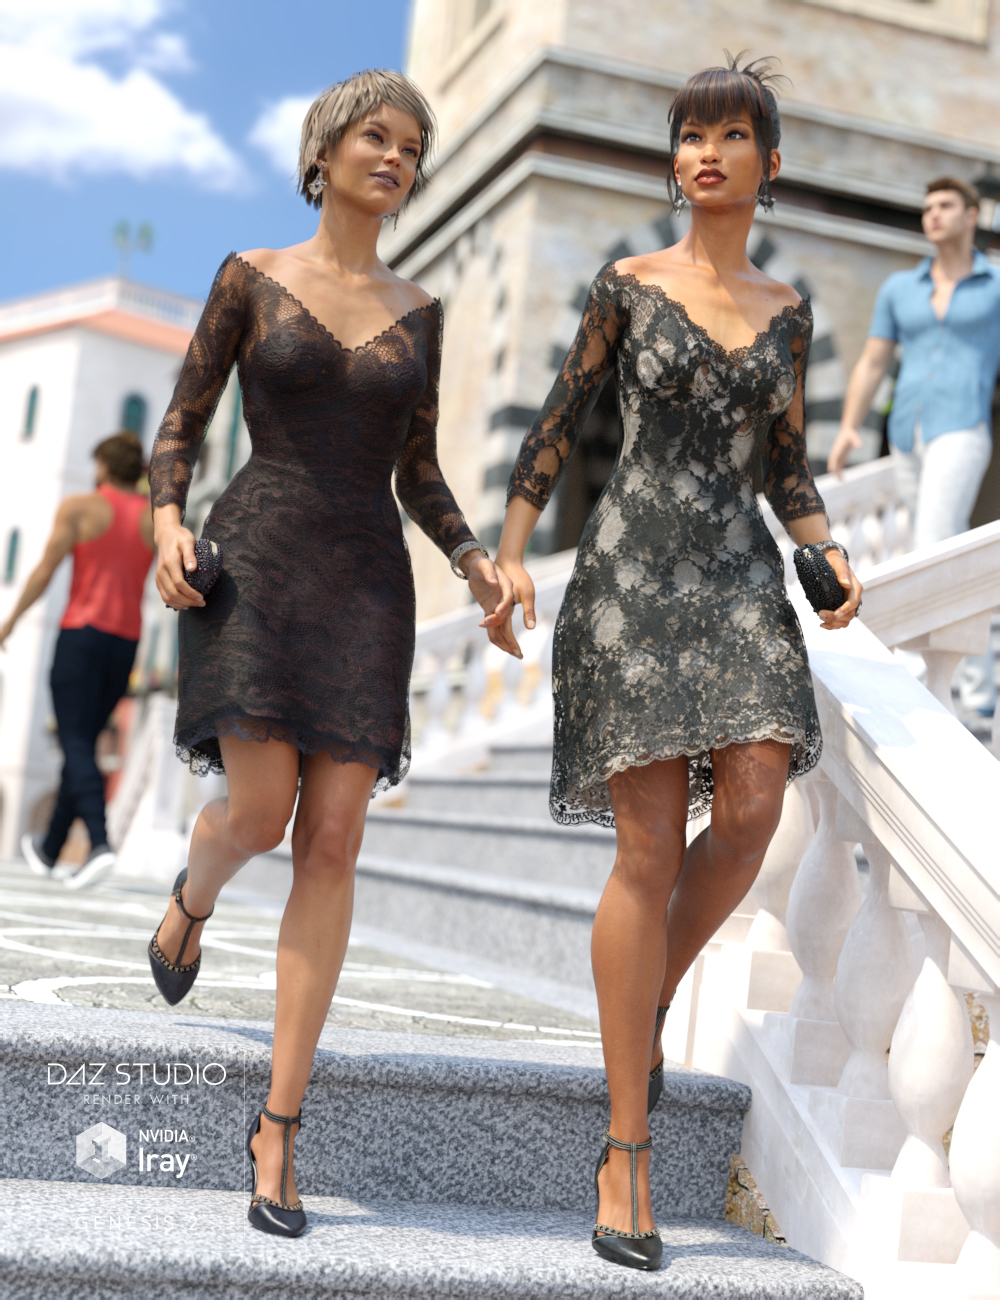 Luxury Lace Cocktail Dress I by: Sarsa, 3D Models by Daz 3D